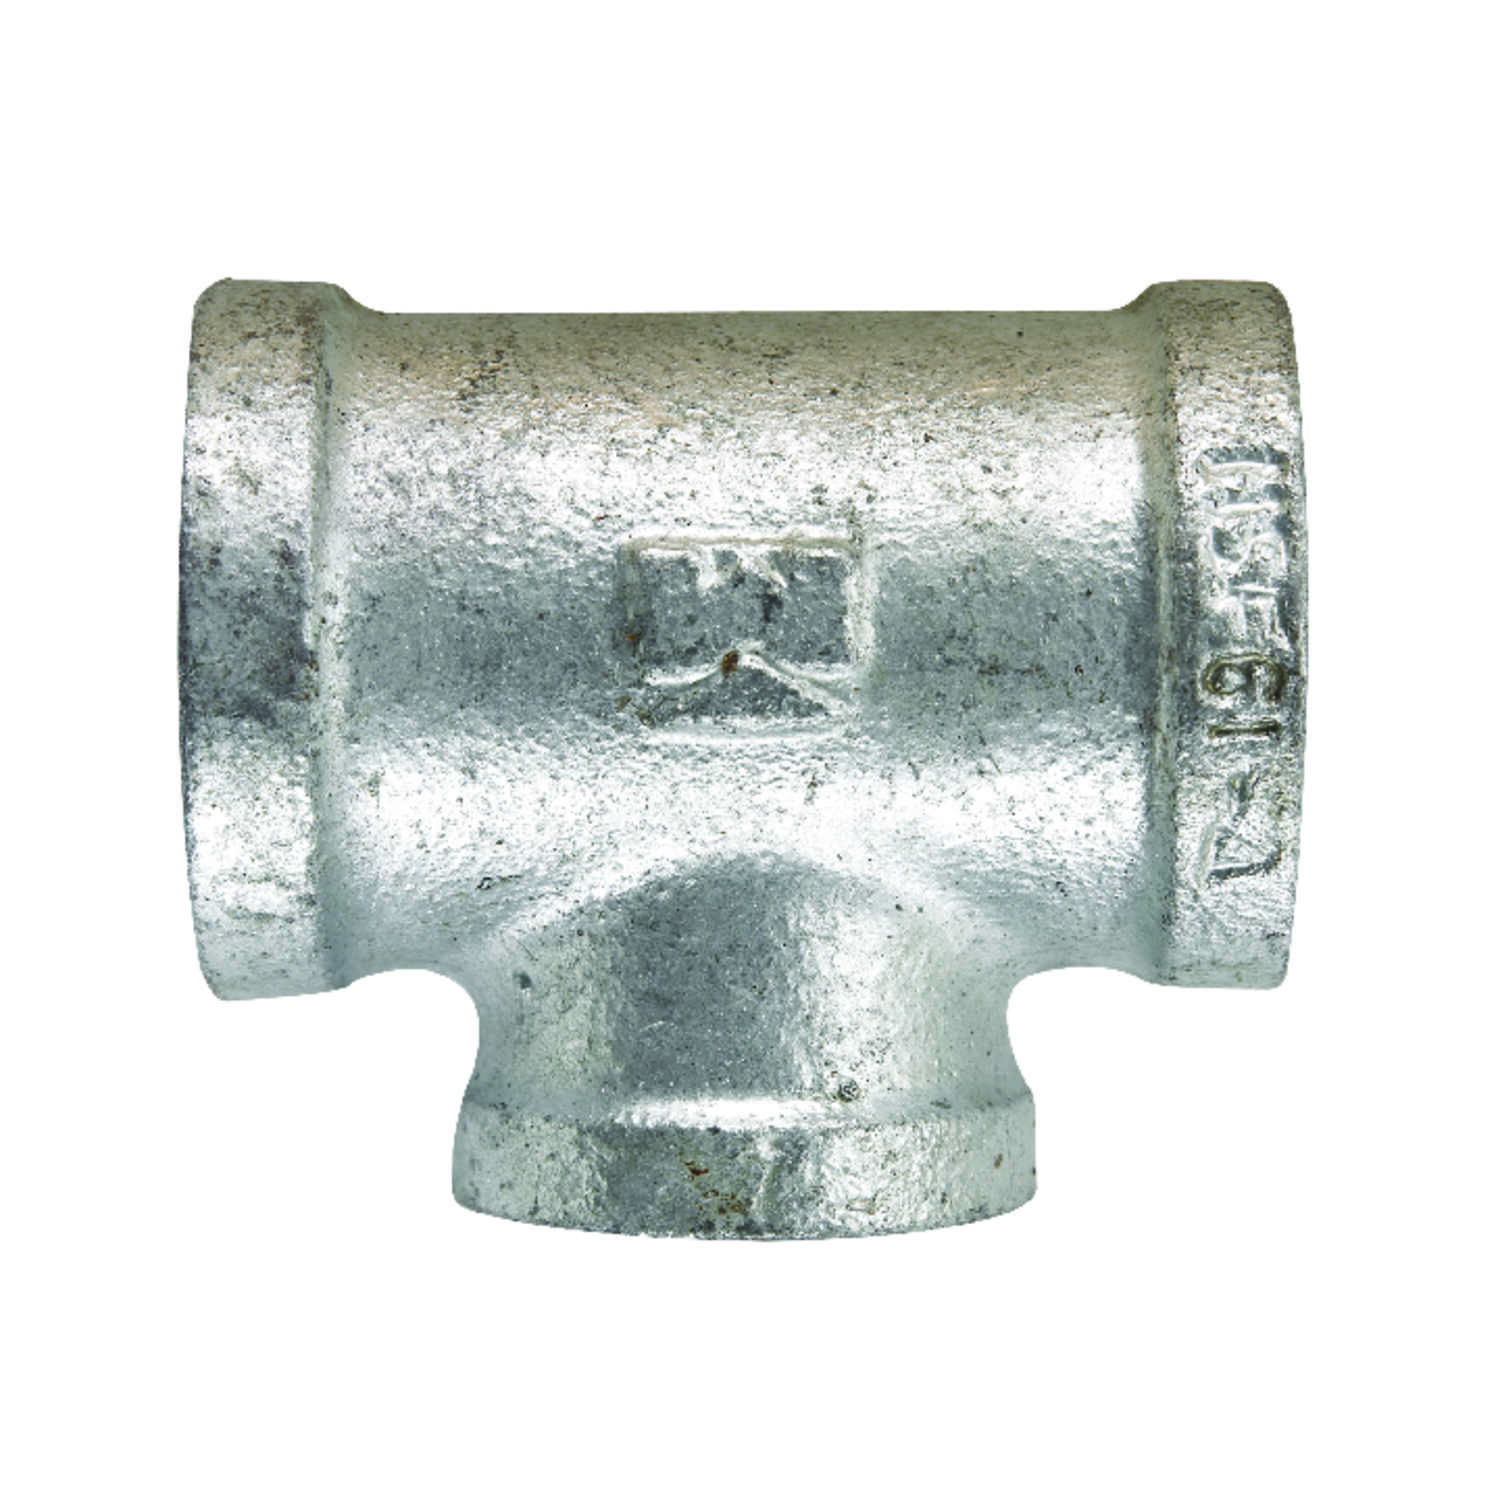 B & K  1 in. FPT   x 1 in. Dia. FPT  Galvanized  Malleable Iron  Reducing Tee